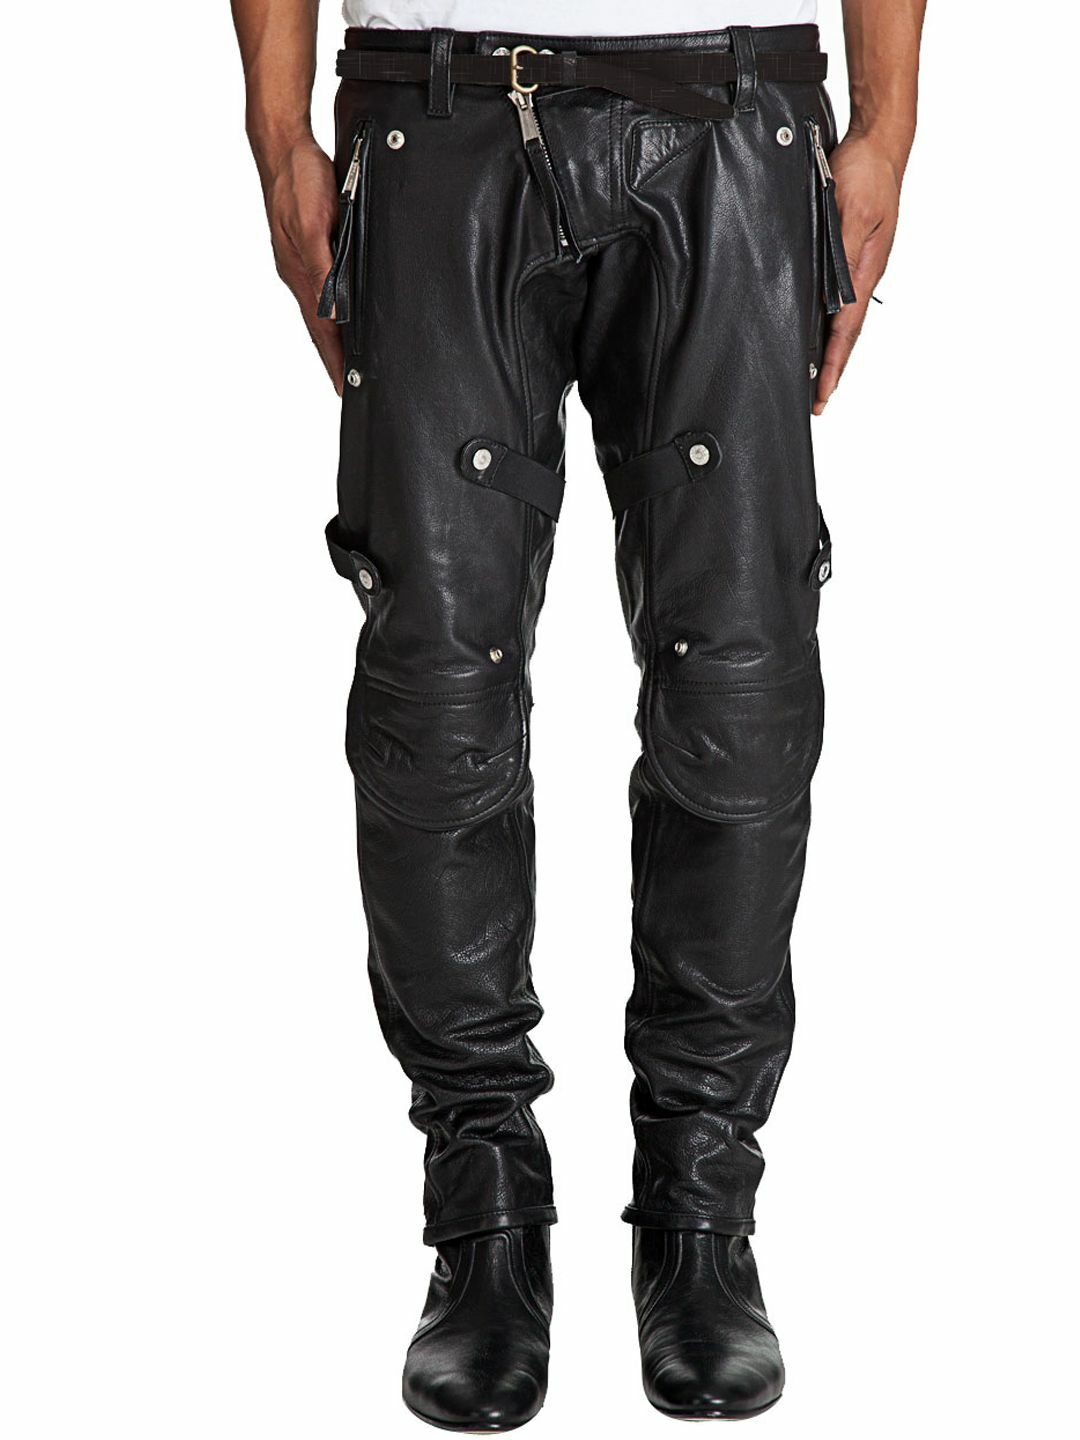 MENS GENUINE HANDMADE LEATHER PANTS LUXURY TROUSER JEANS SLANT ZIP blueF PARTY